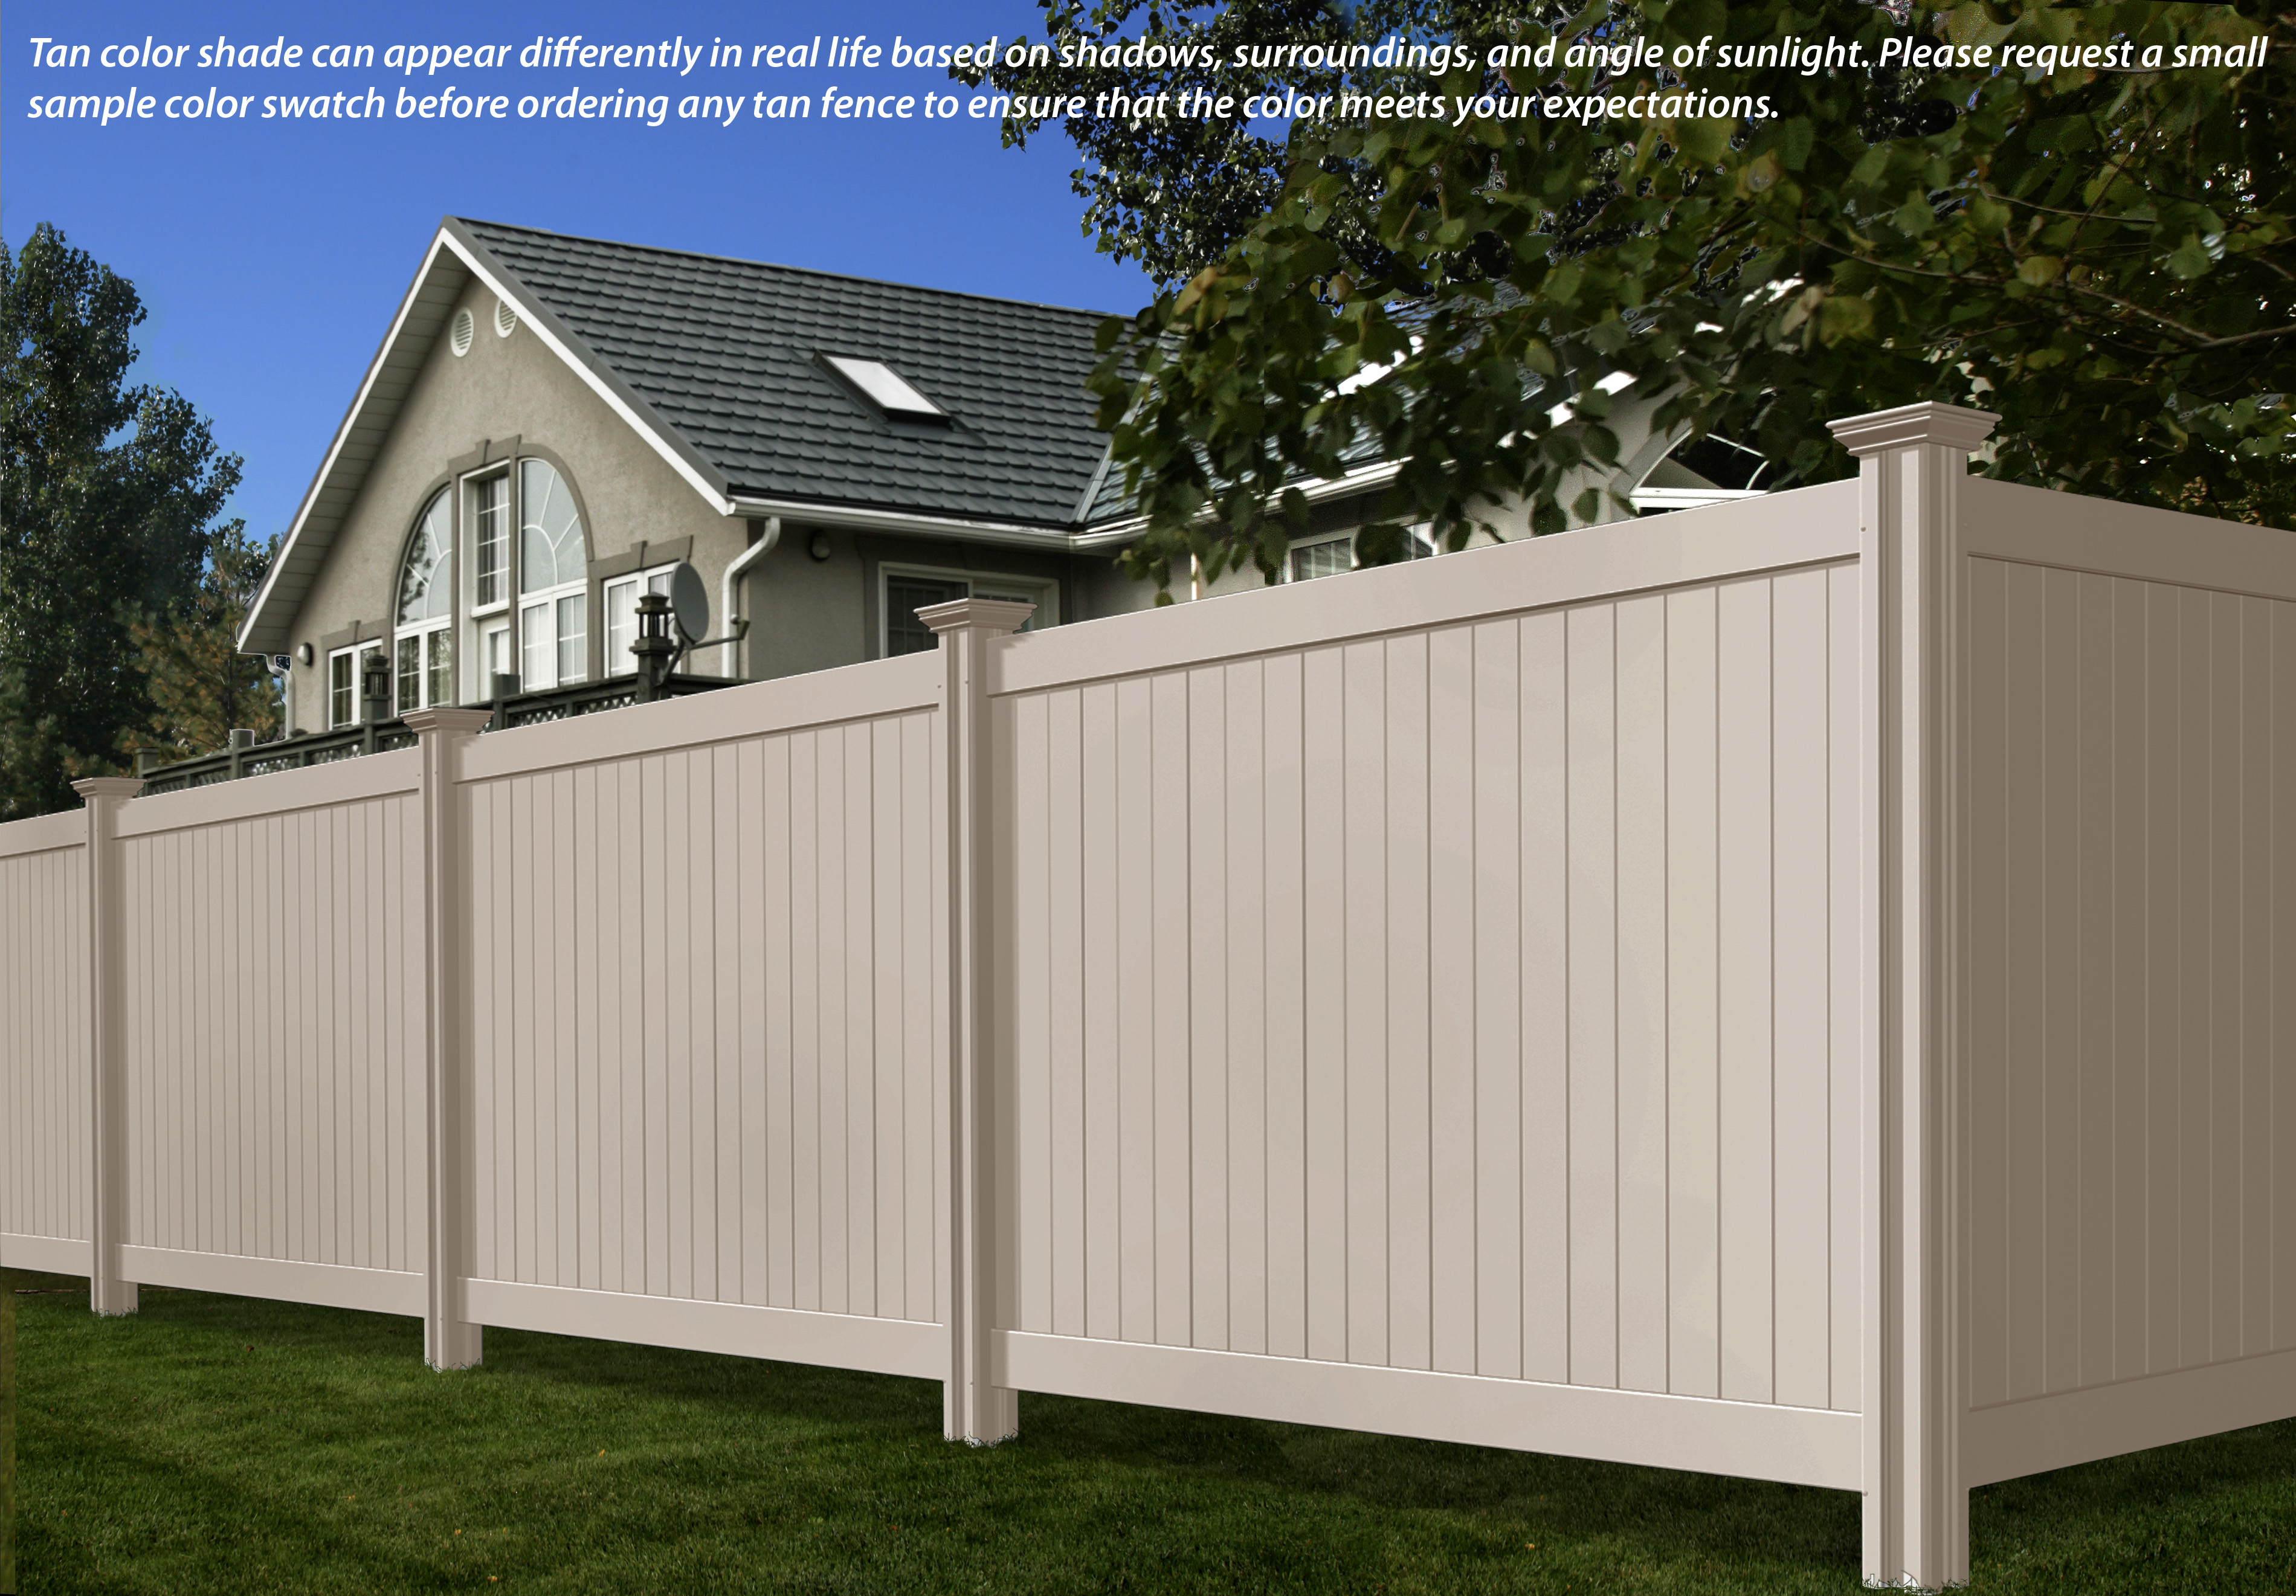 We offer a tan privacy vinyl fence